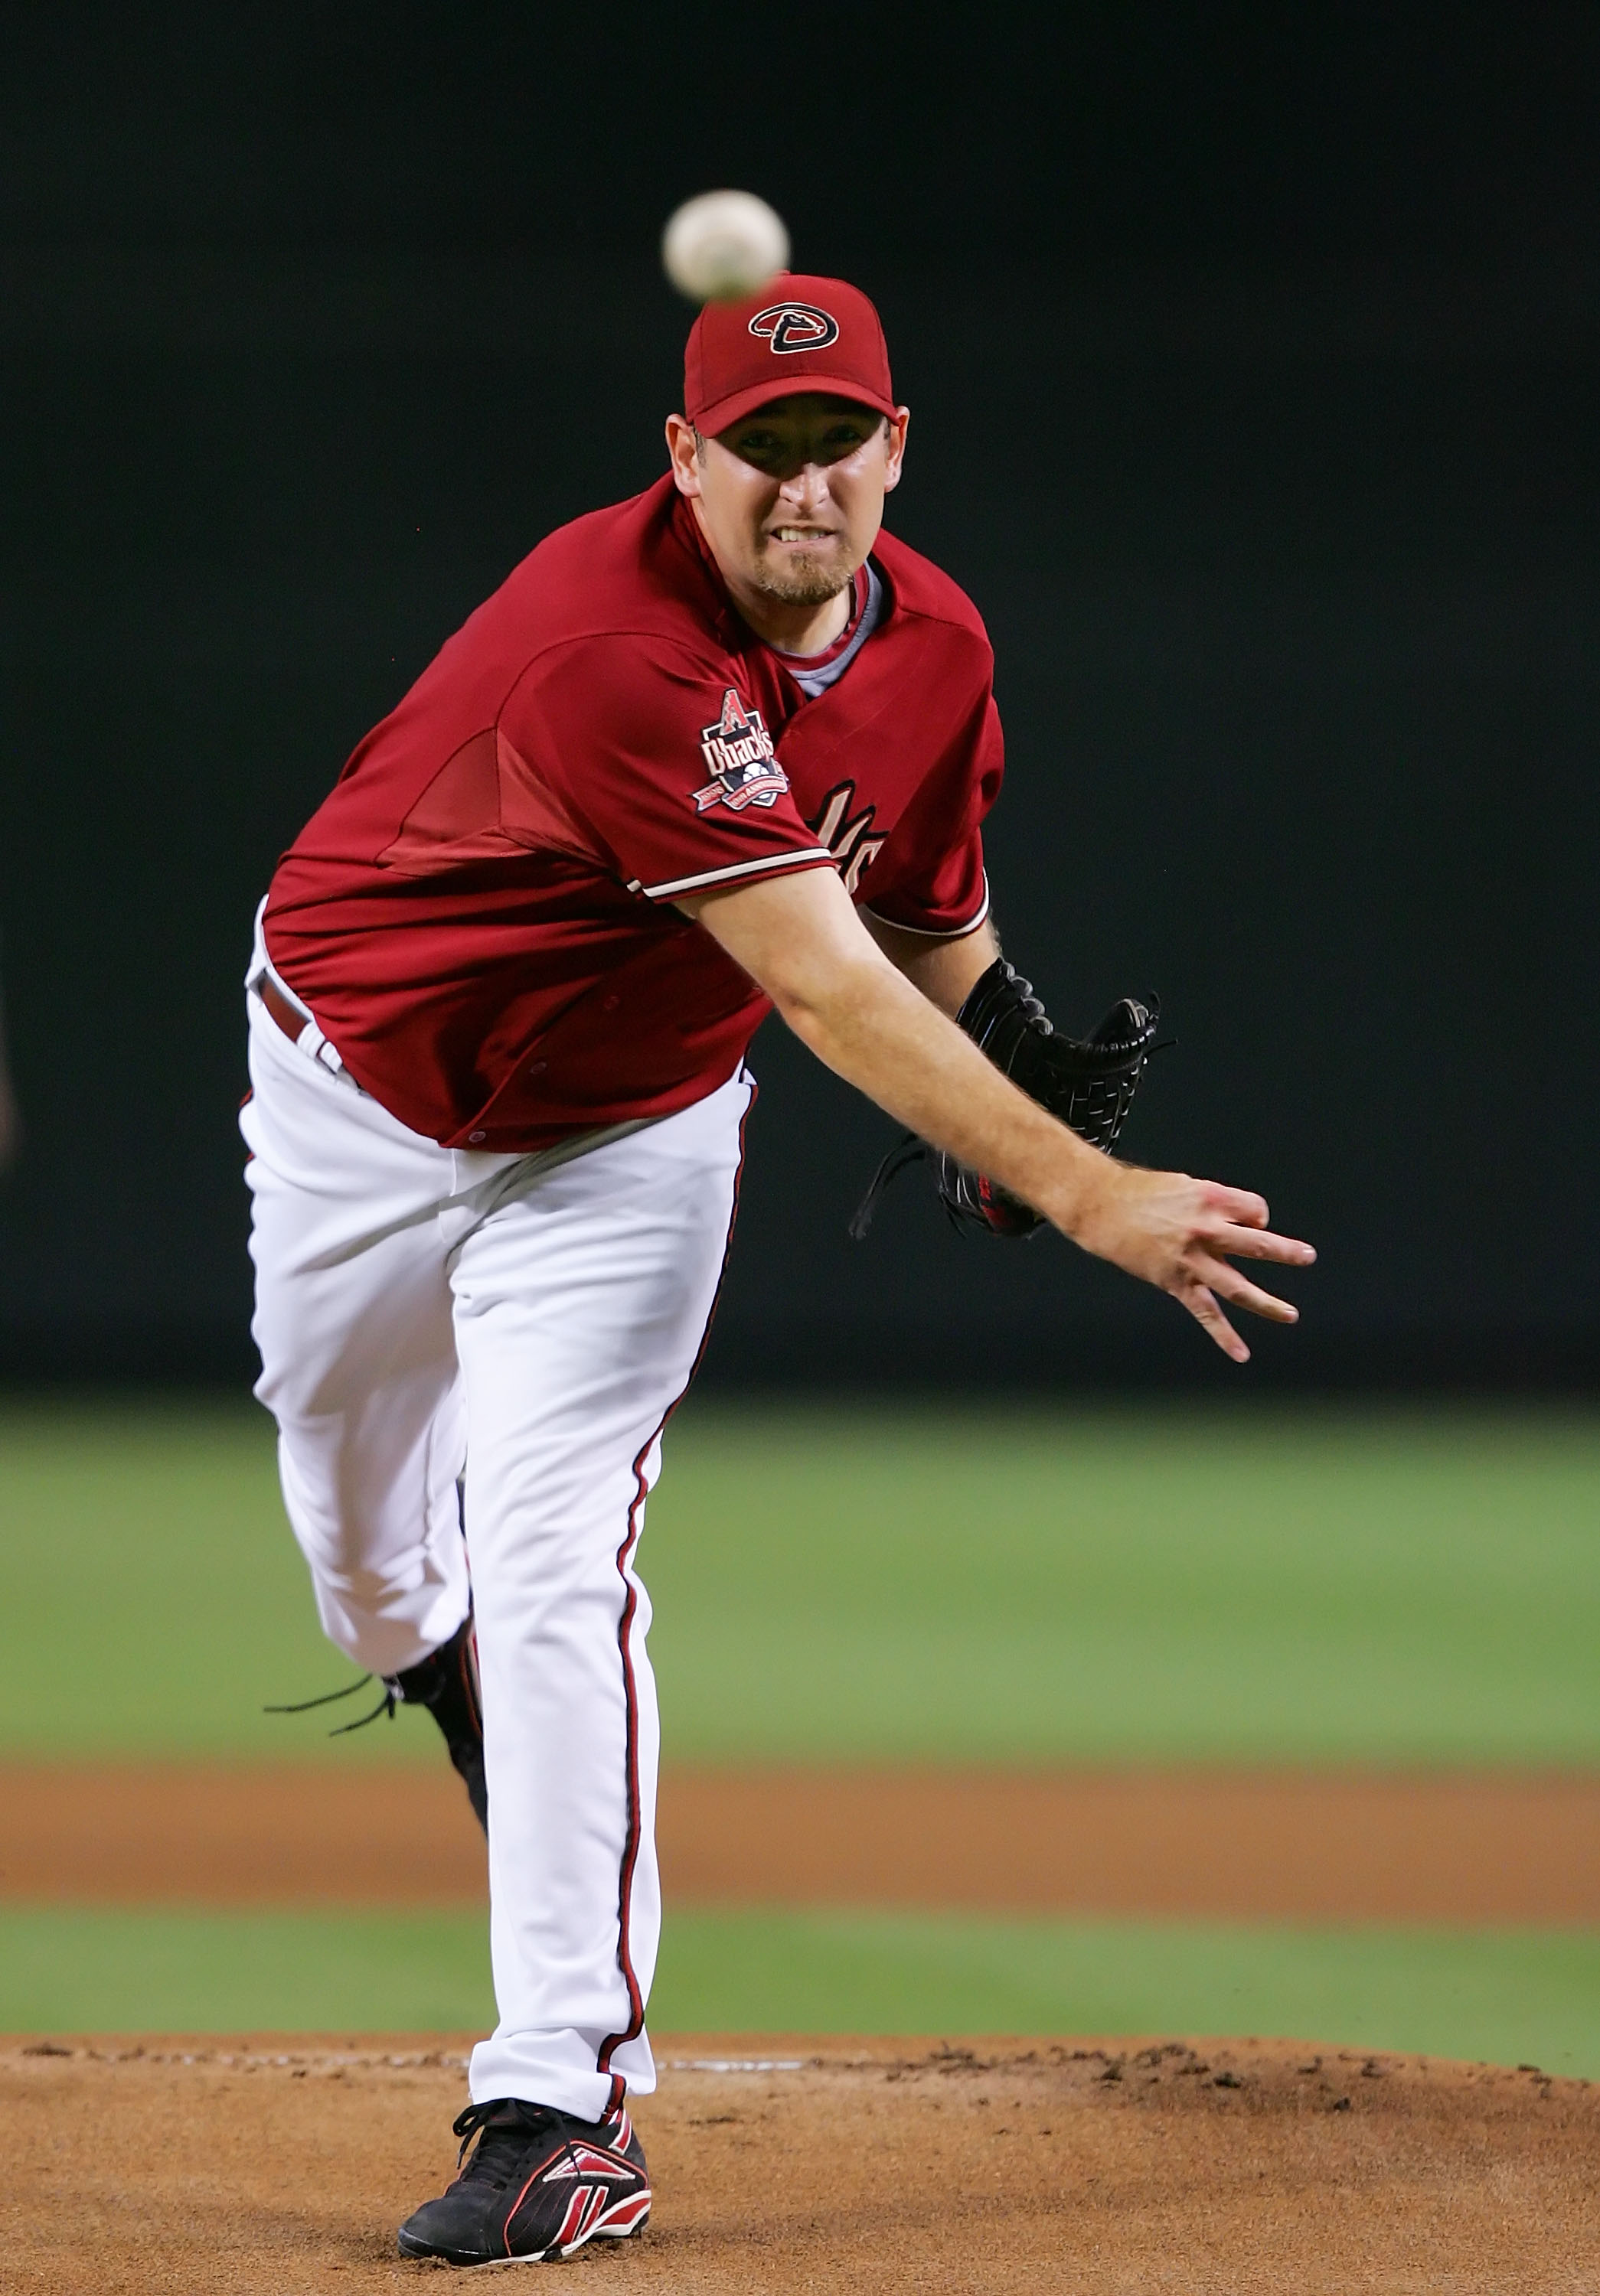 PHOENIX - AUGUST 05:  Brandon Webb #17 of the Arizona Diamondbacks pitches during a game against the Pittsburgh Pirates at Chase Field on August 5, 2008 in Phoenix, Arizona.  (Photo by Lisa Blumenfeld/Getty Images)